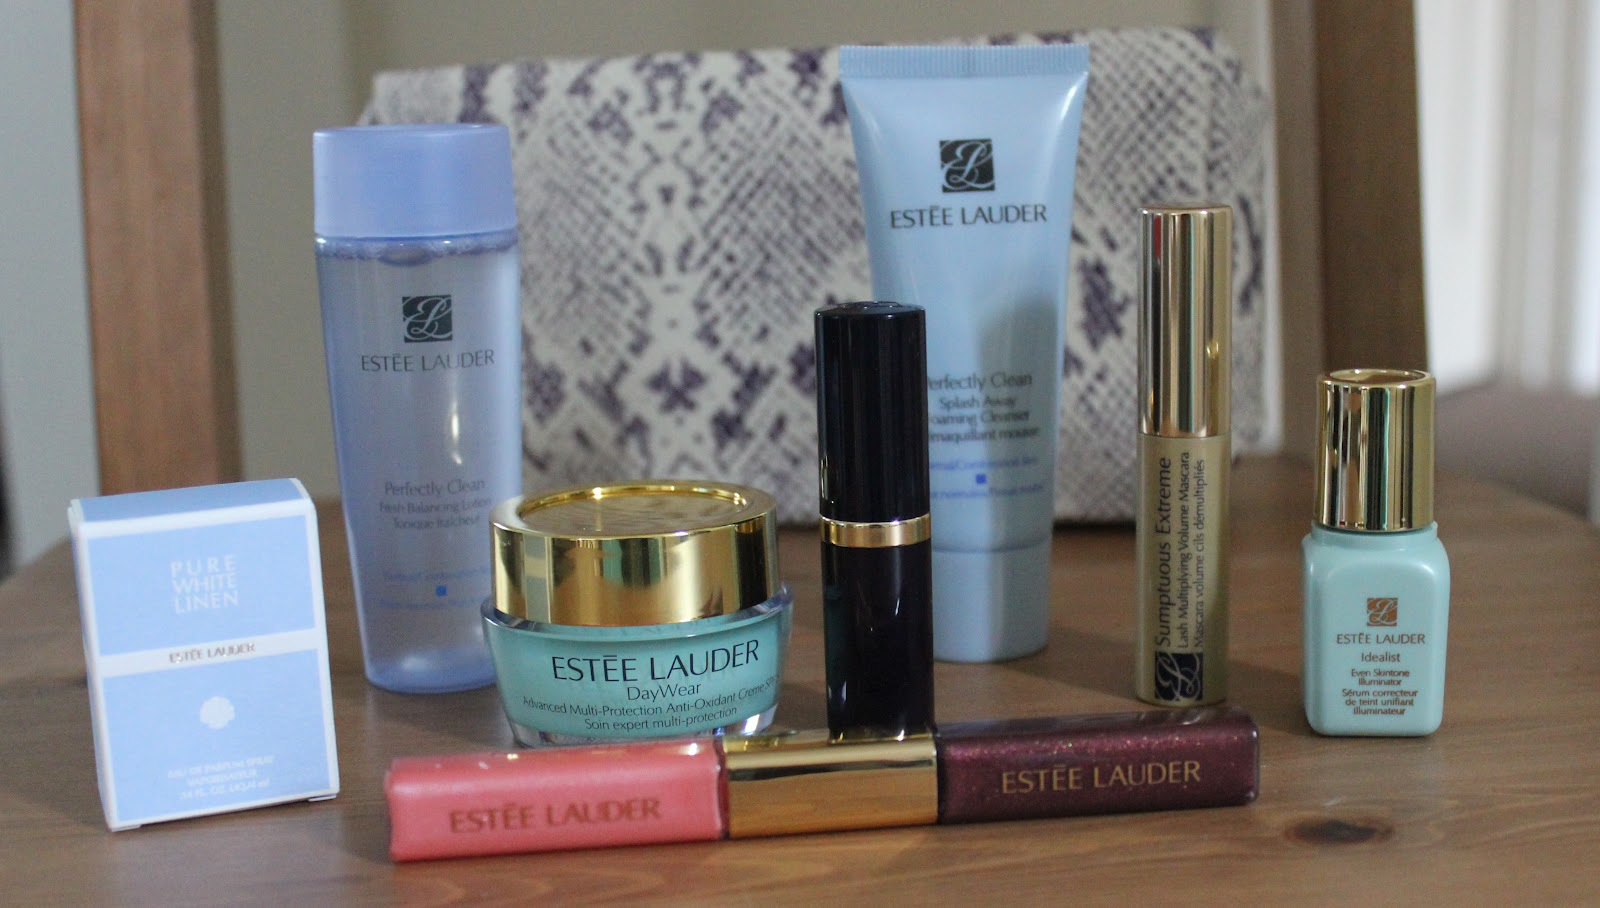 It S The Estee Lauder Gift With Purchase Time Of Year And Since I Haven T